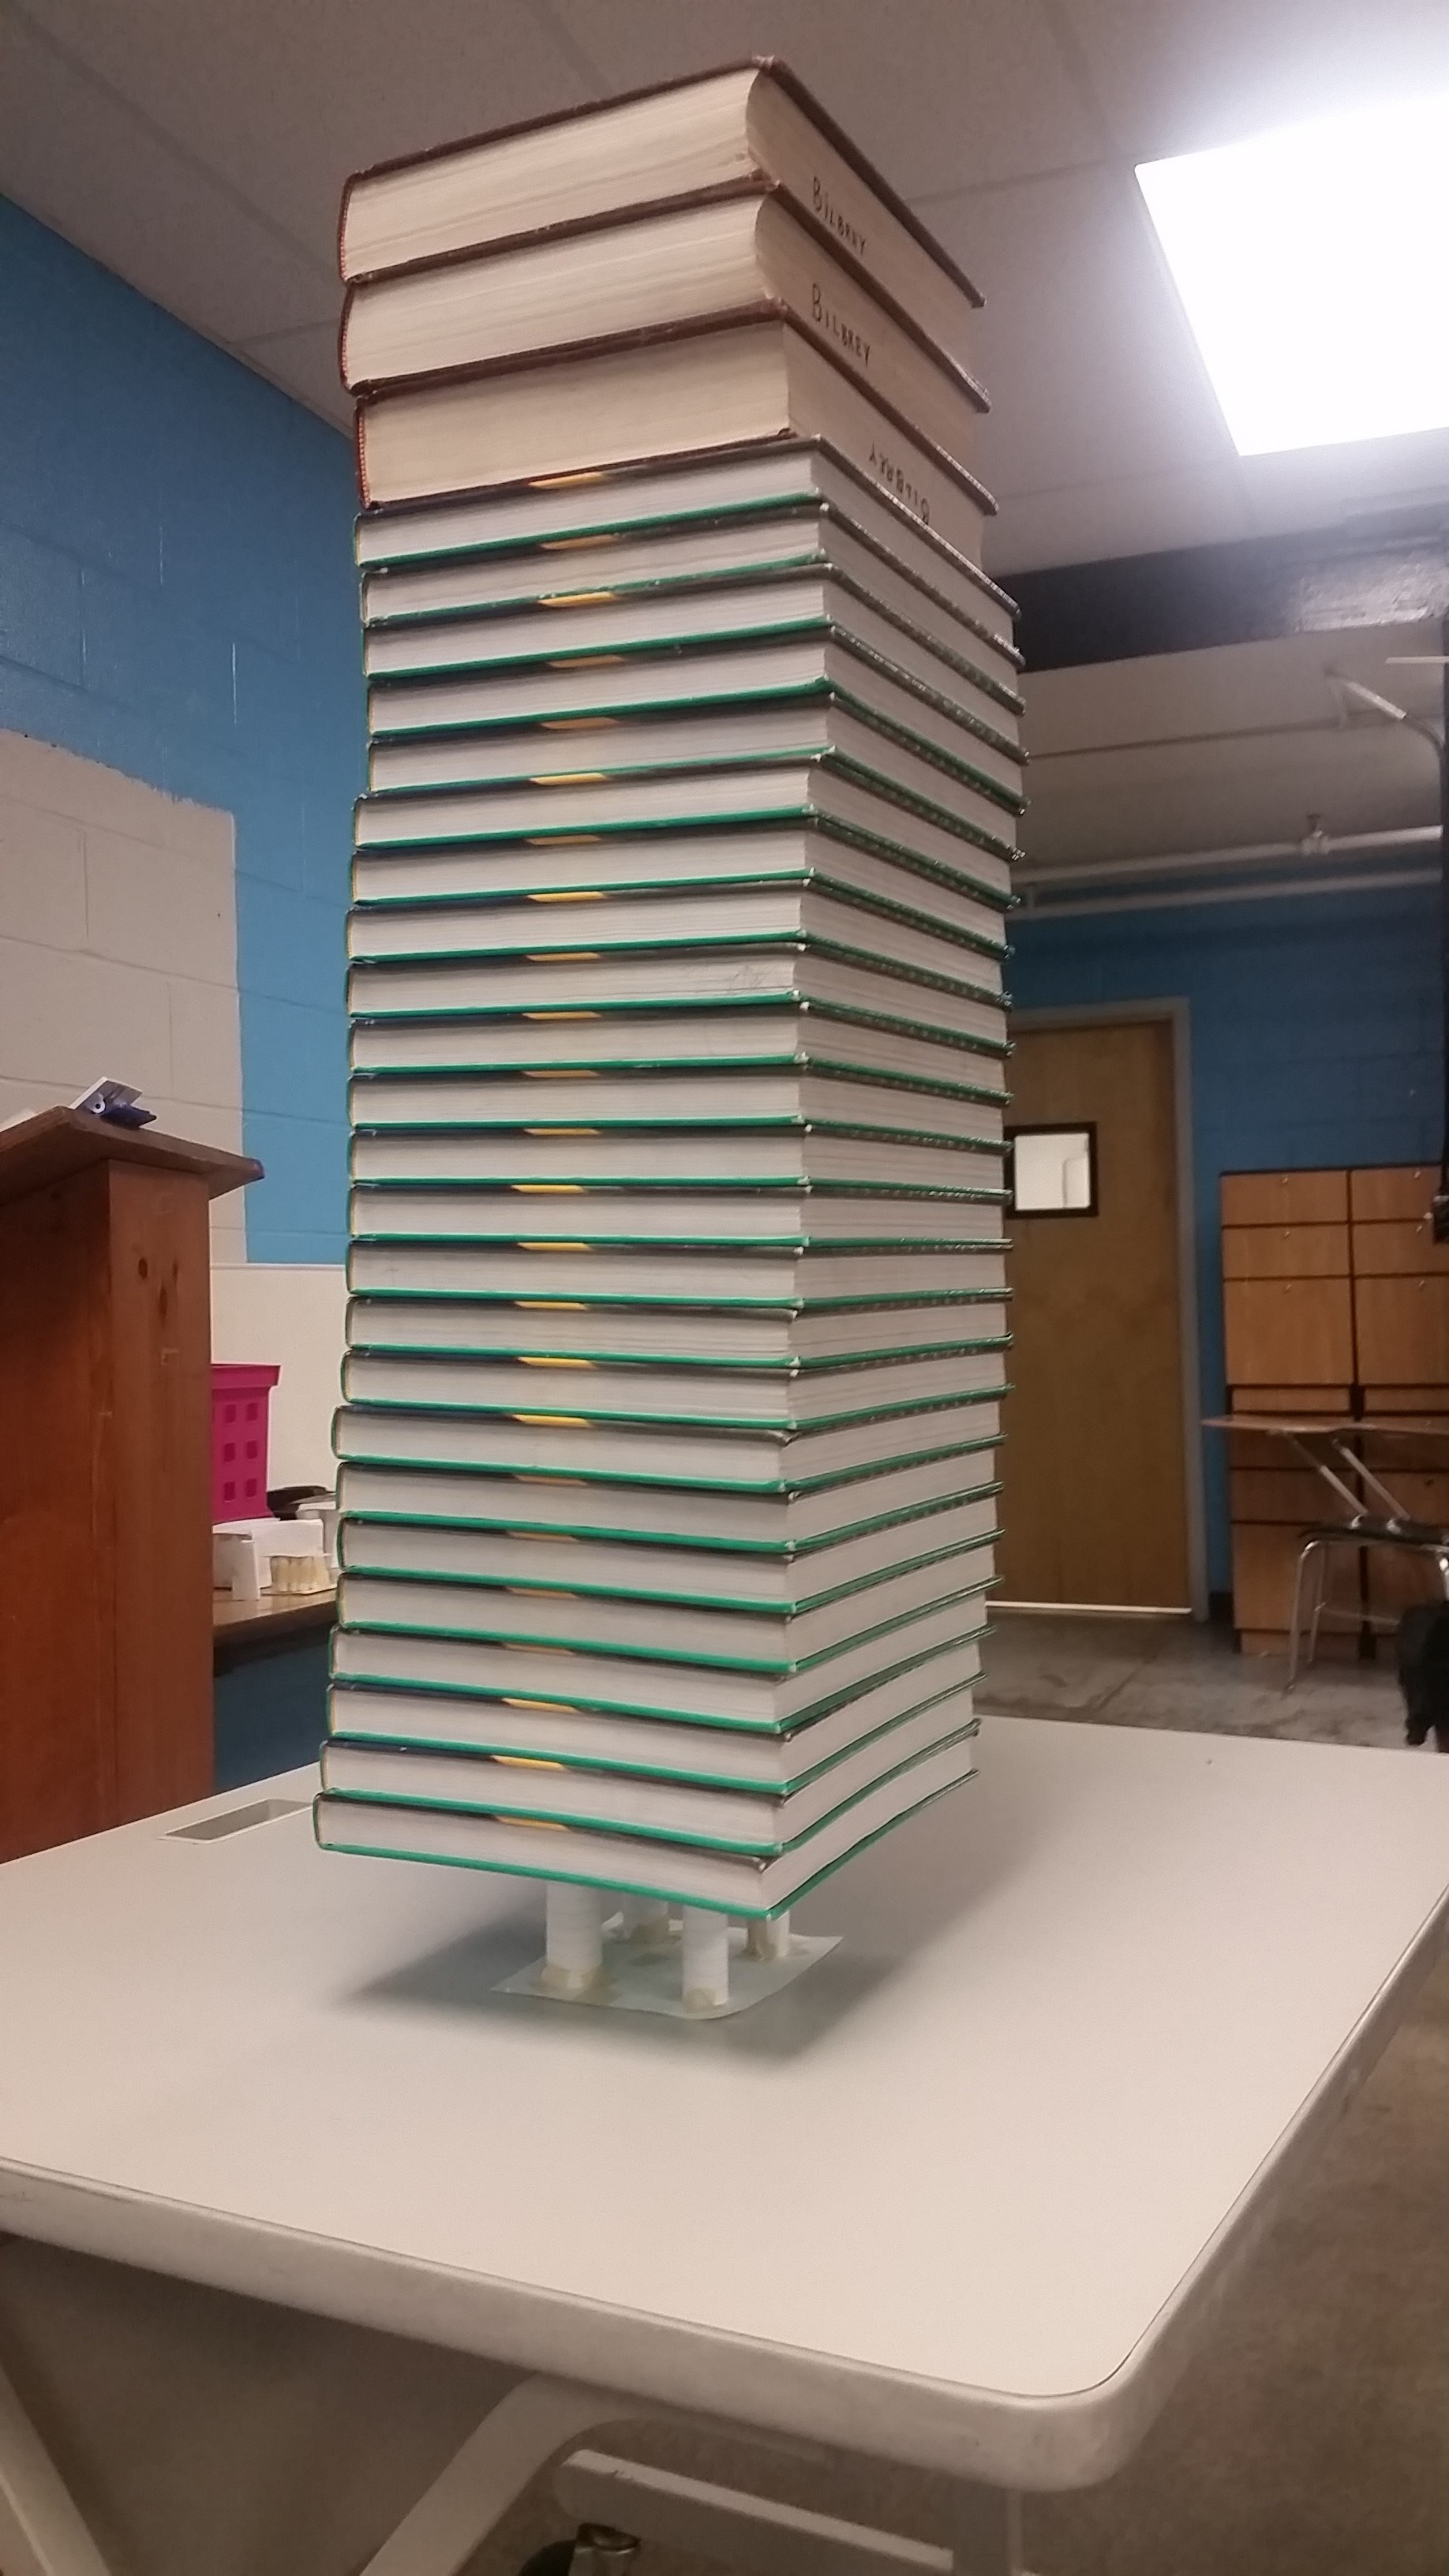 Index Card Structures